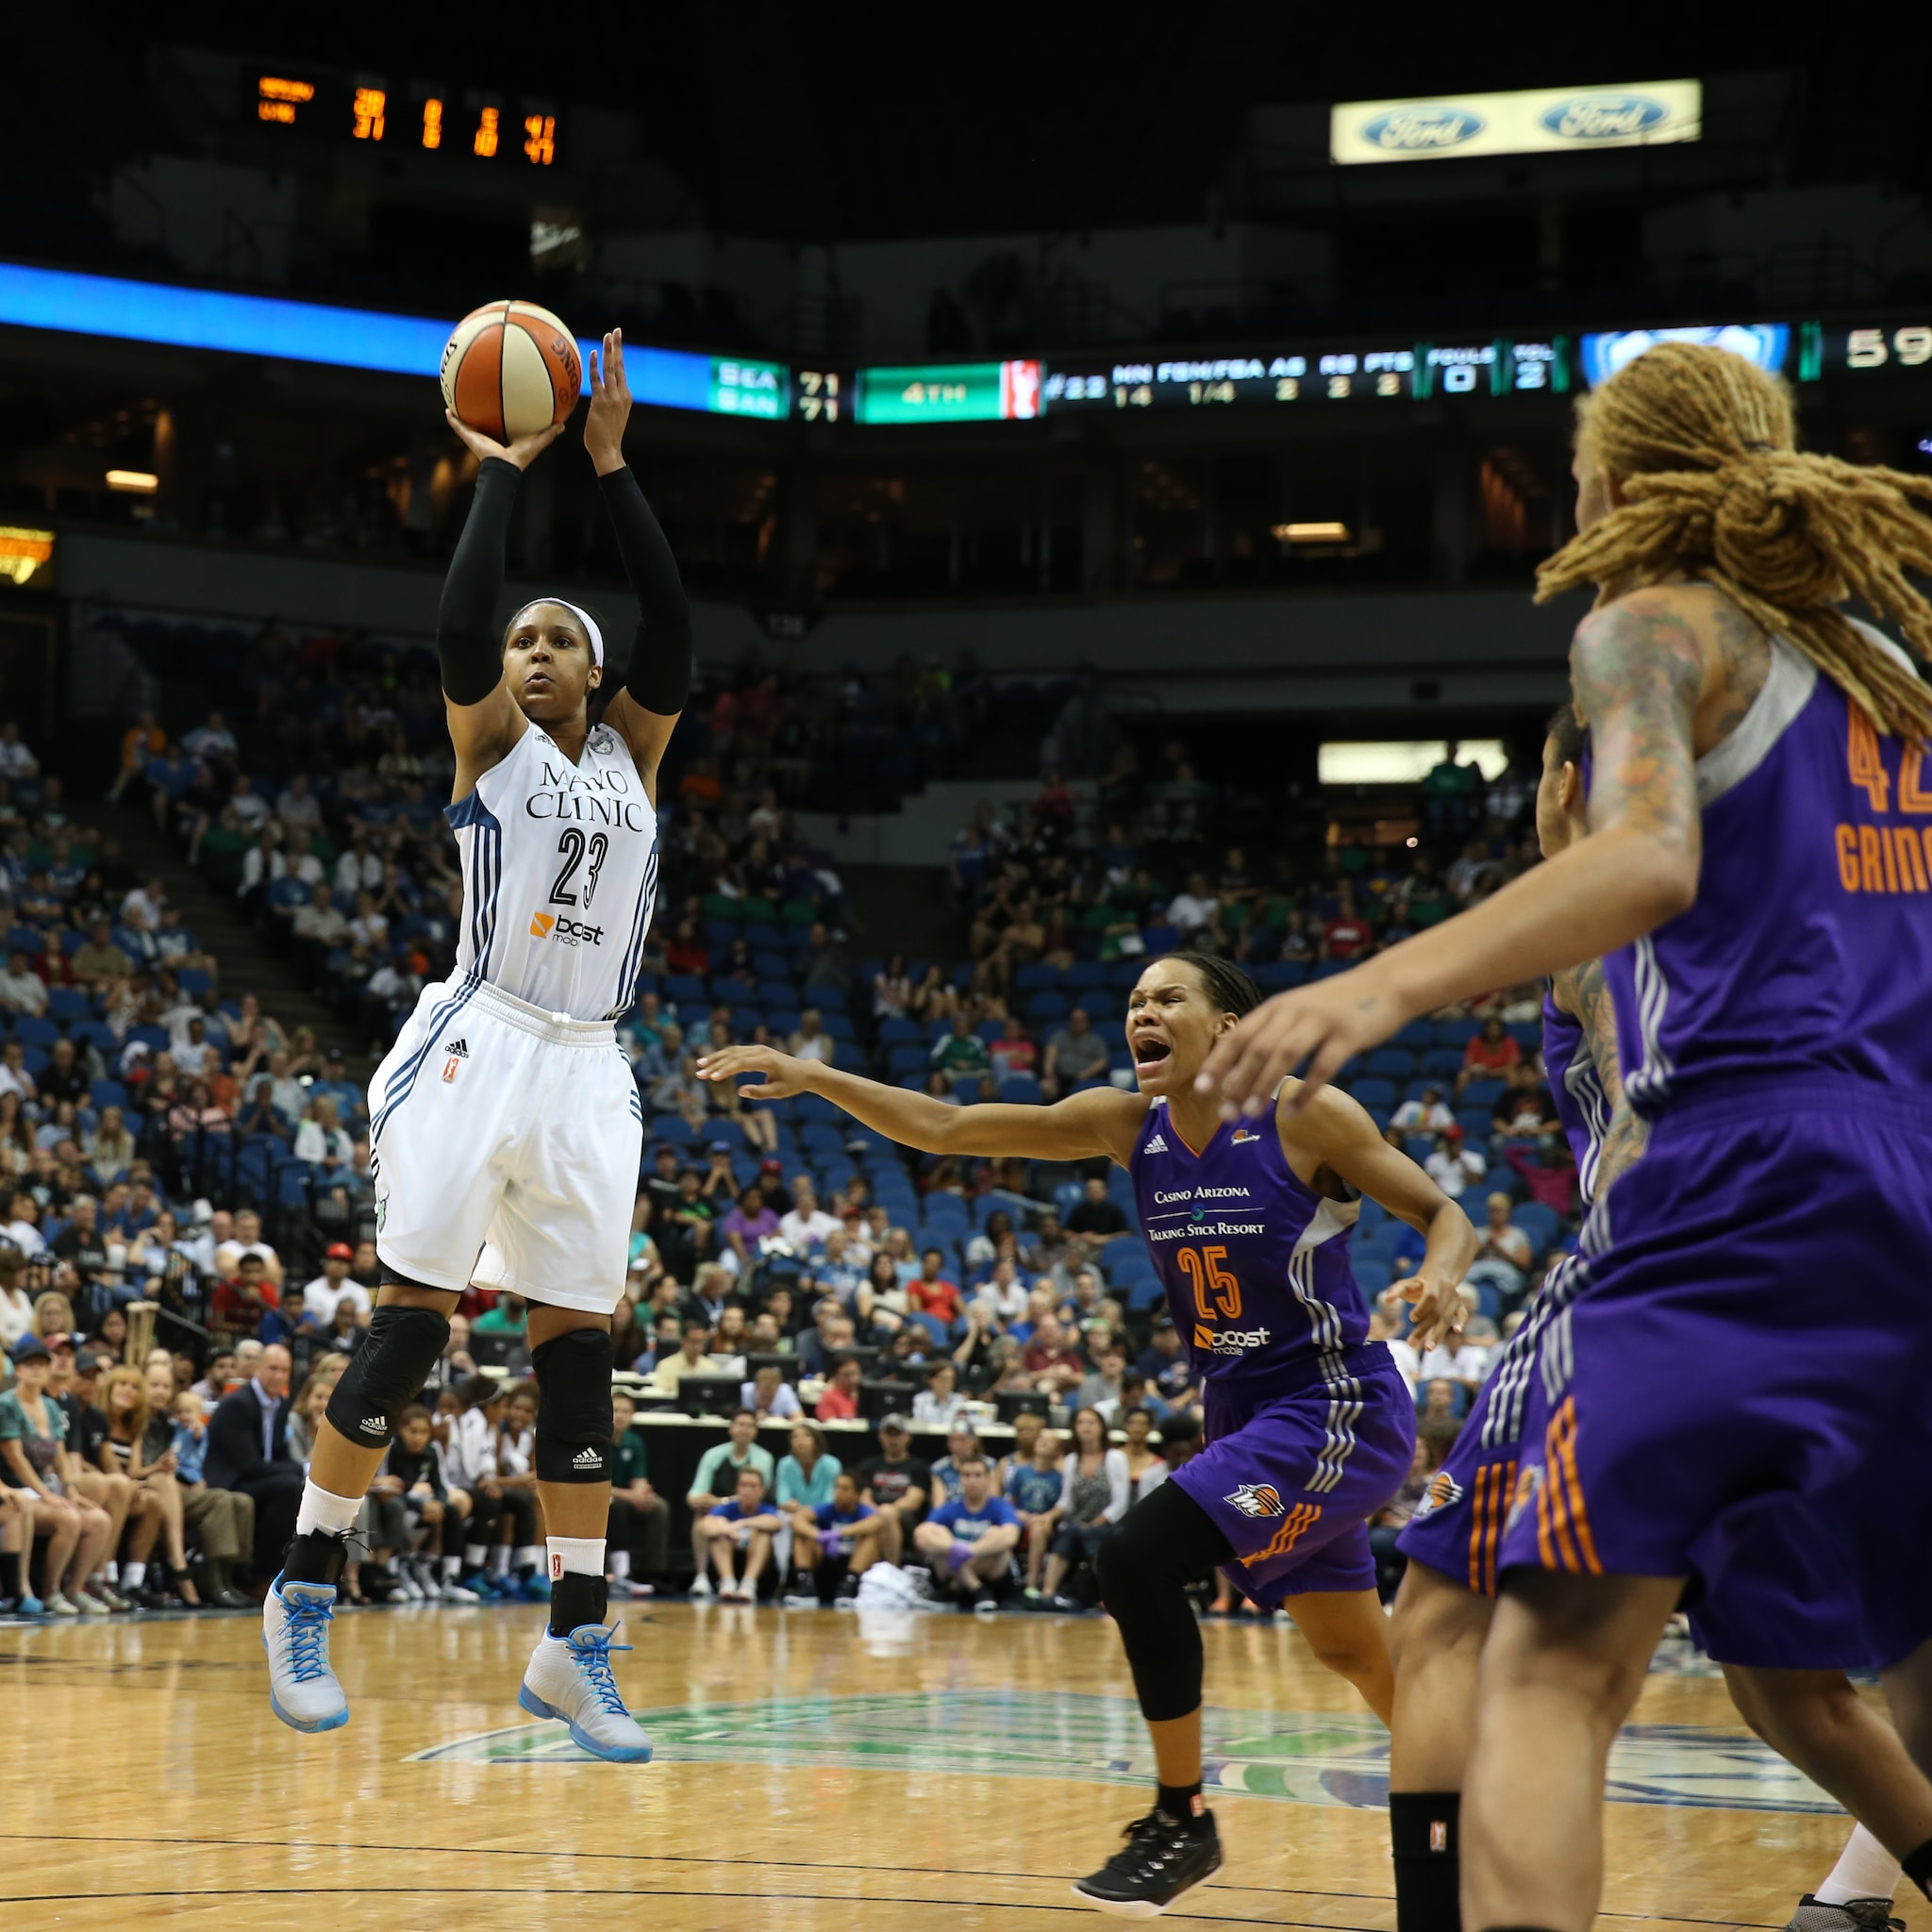 Lynx forward Maya Moore proved once again why she's the reigning WNBA MVP, scoring 21 points to go with five rebounds, six assists, and five steals.